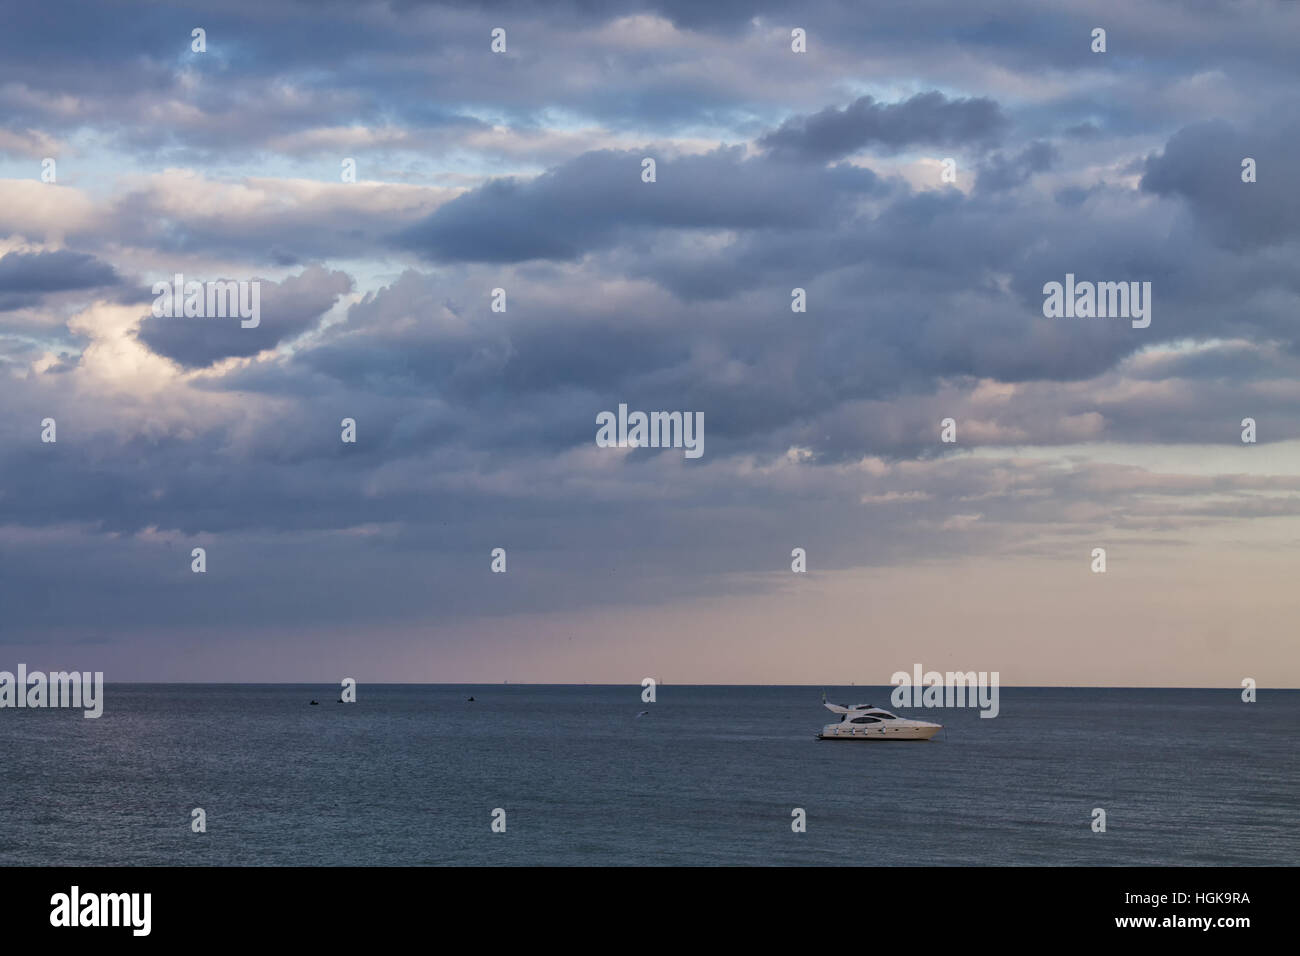 A luxury private yacht under way at sea with amazing cloud sky - Stock Image